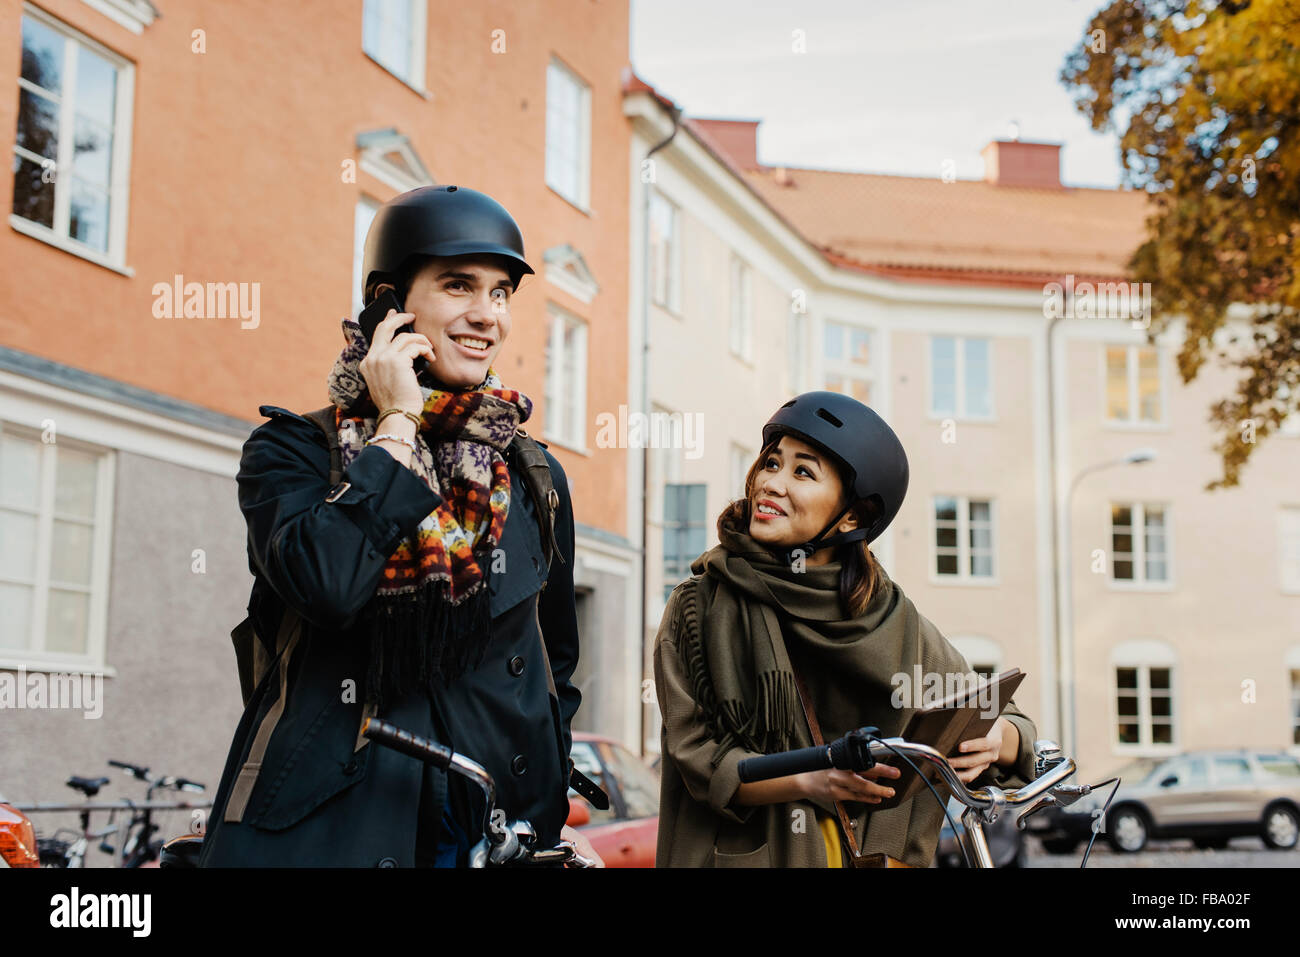 Sweden, Uppland, Stockholm, Vasastan, Rodabergsbrinken, Two people standing with bicycles outdoors - Stock Image